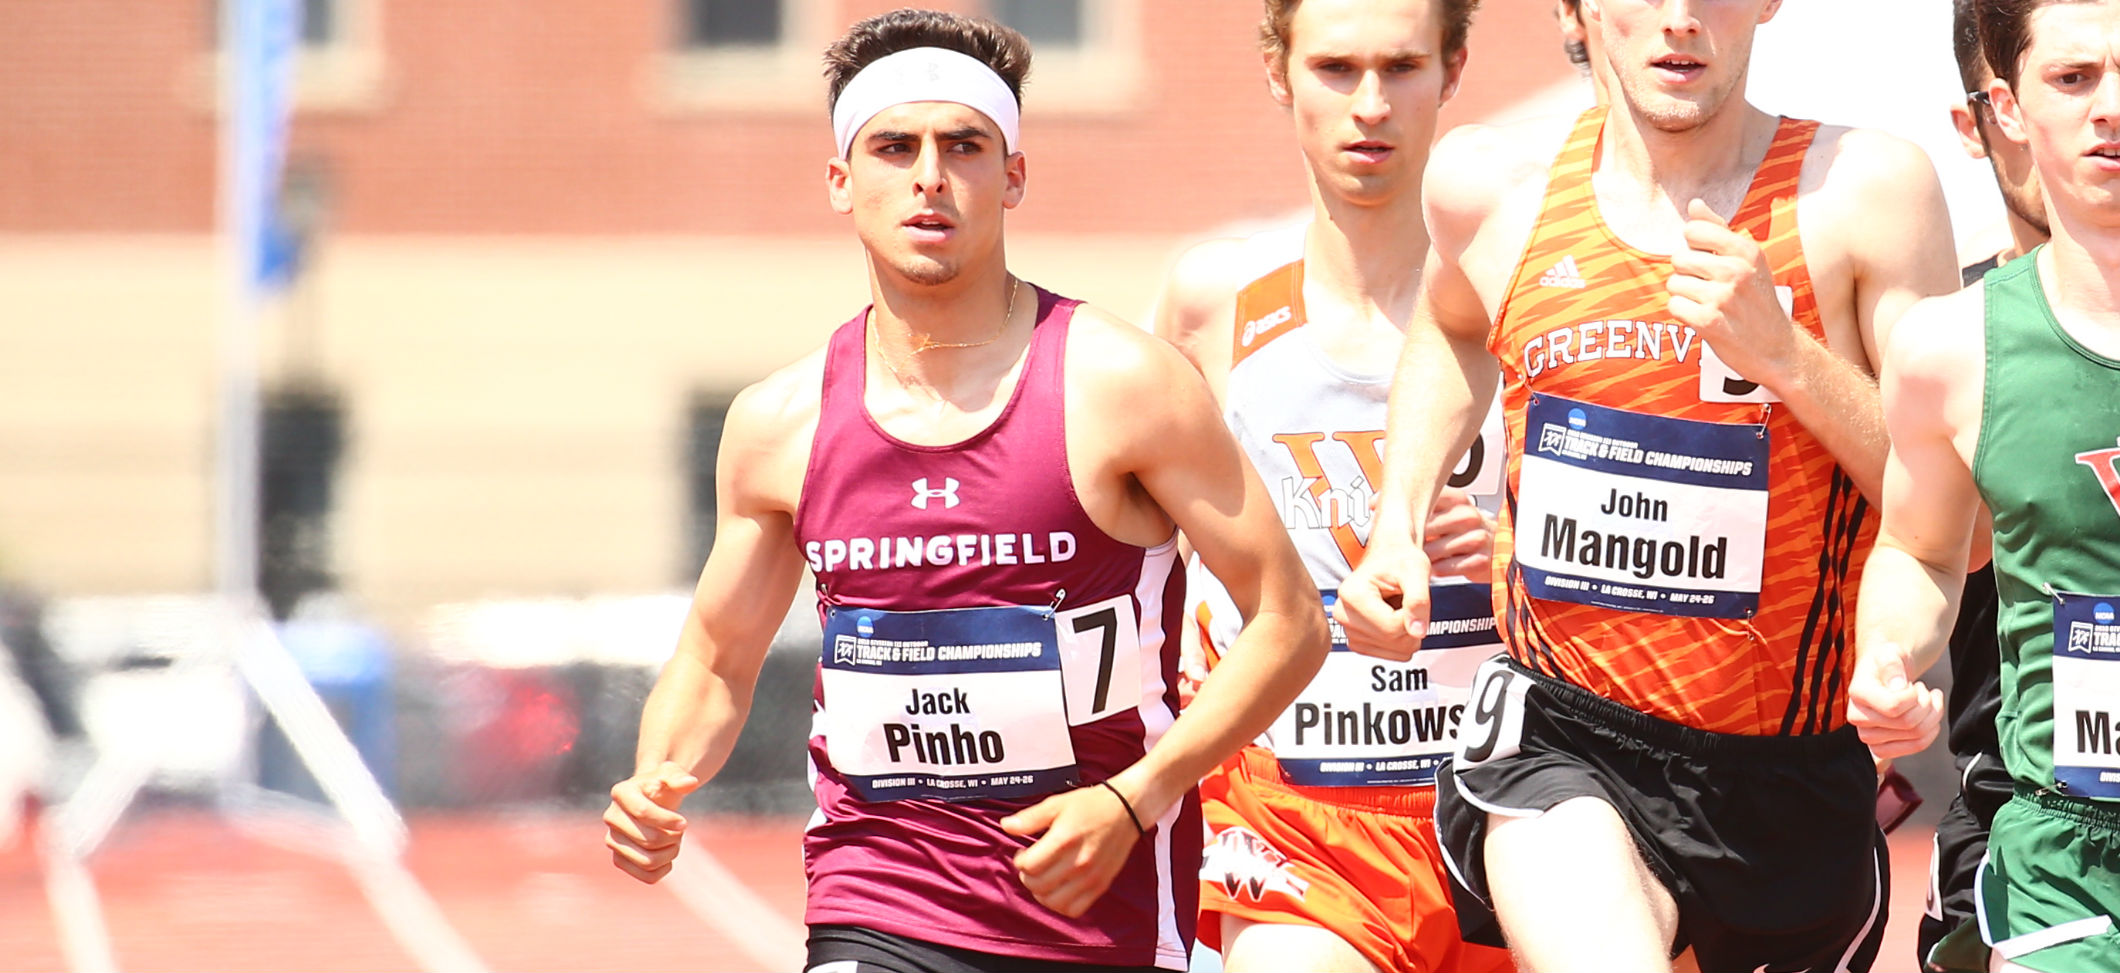 Pinho Competes in 1500 Meter Prelims at NCAA Division III Outdoor Track and Field National Championships